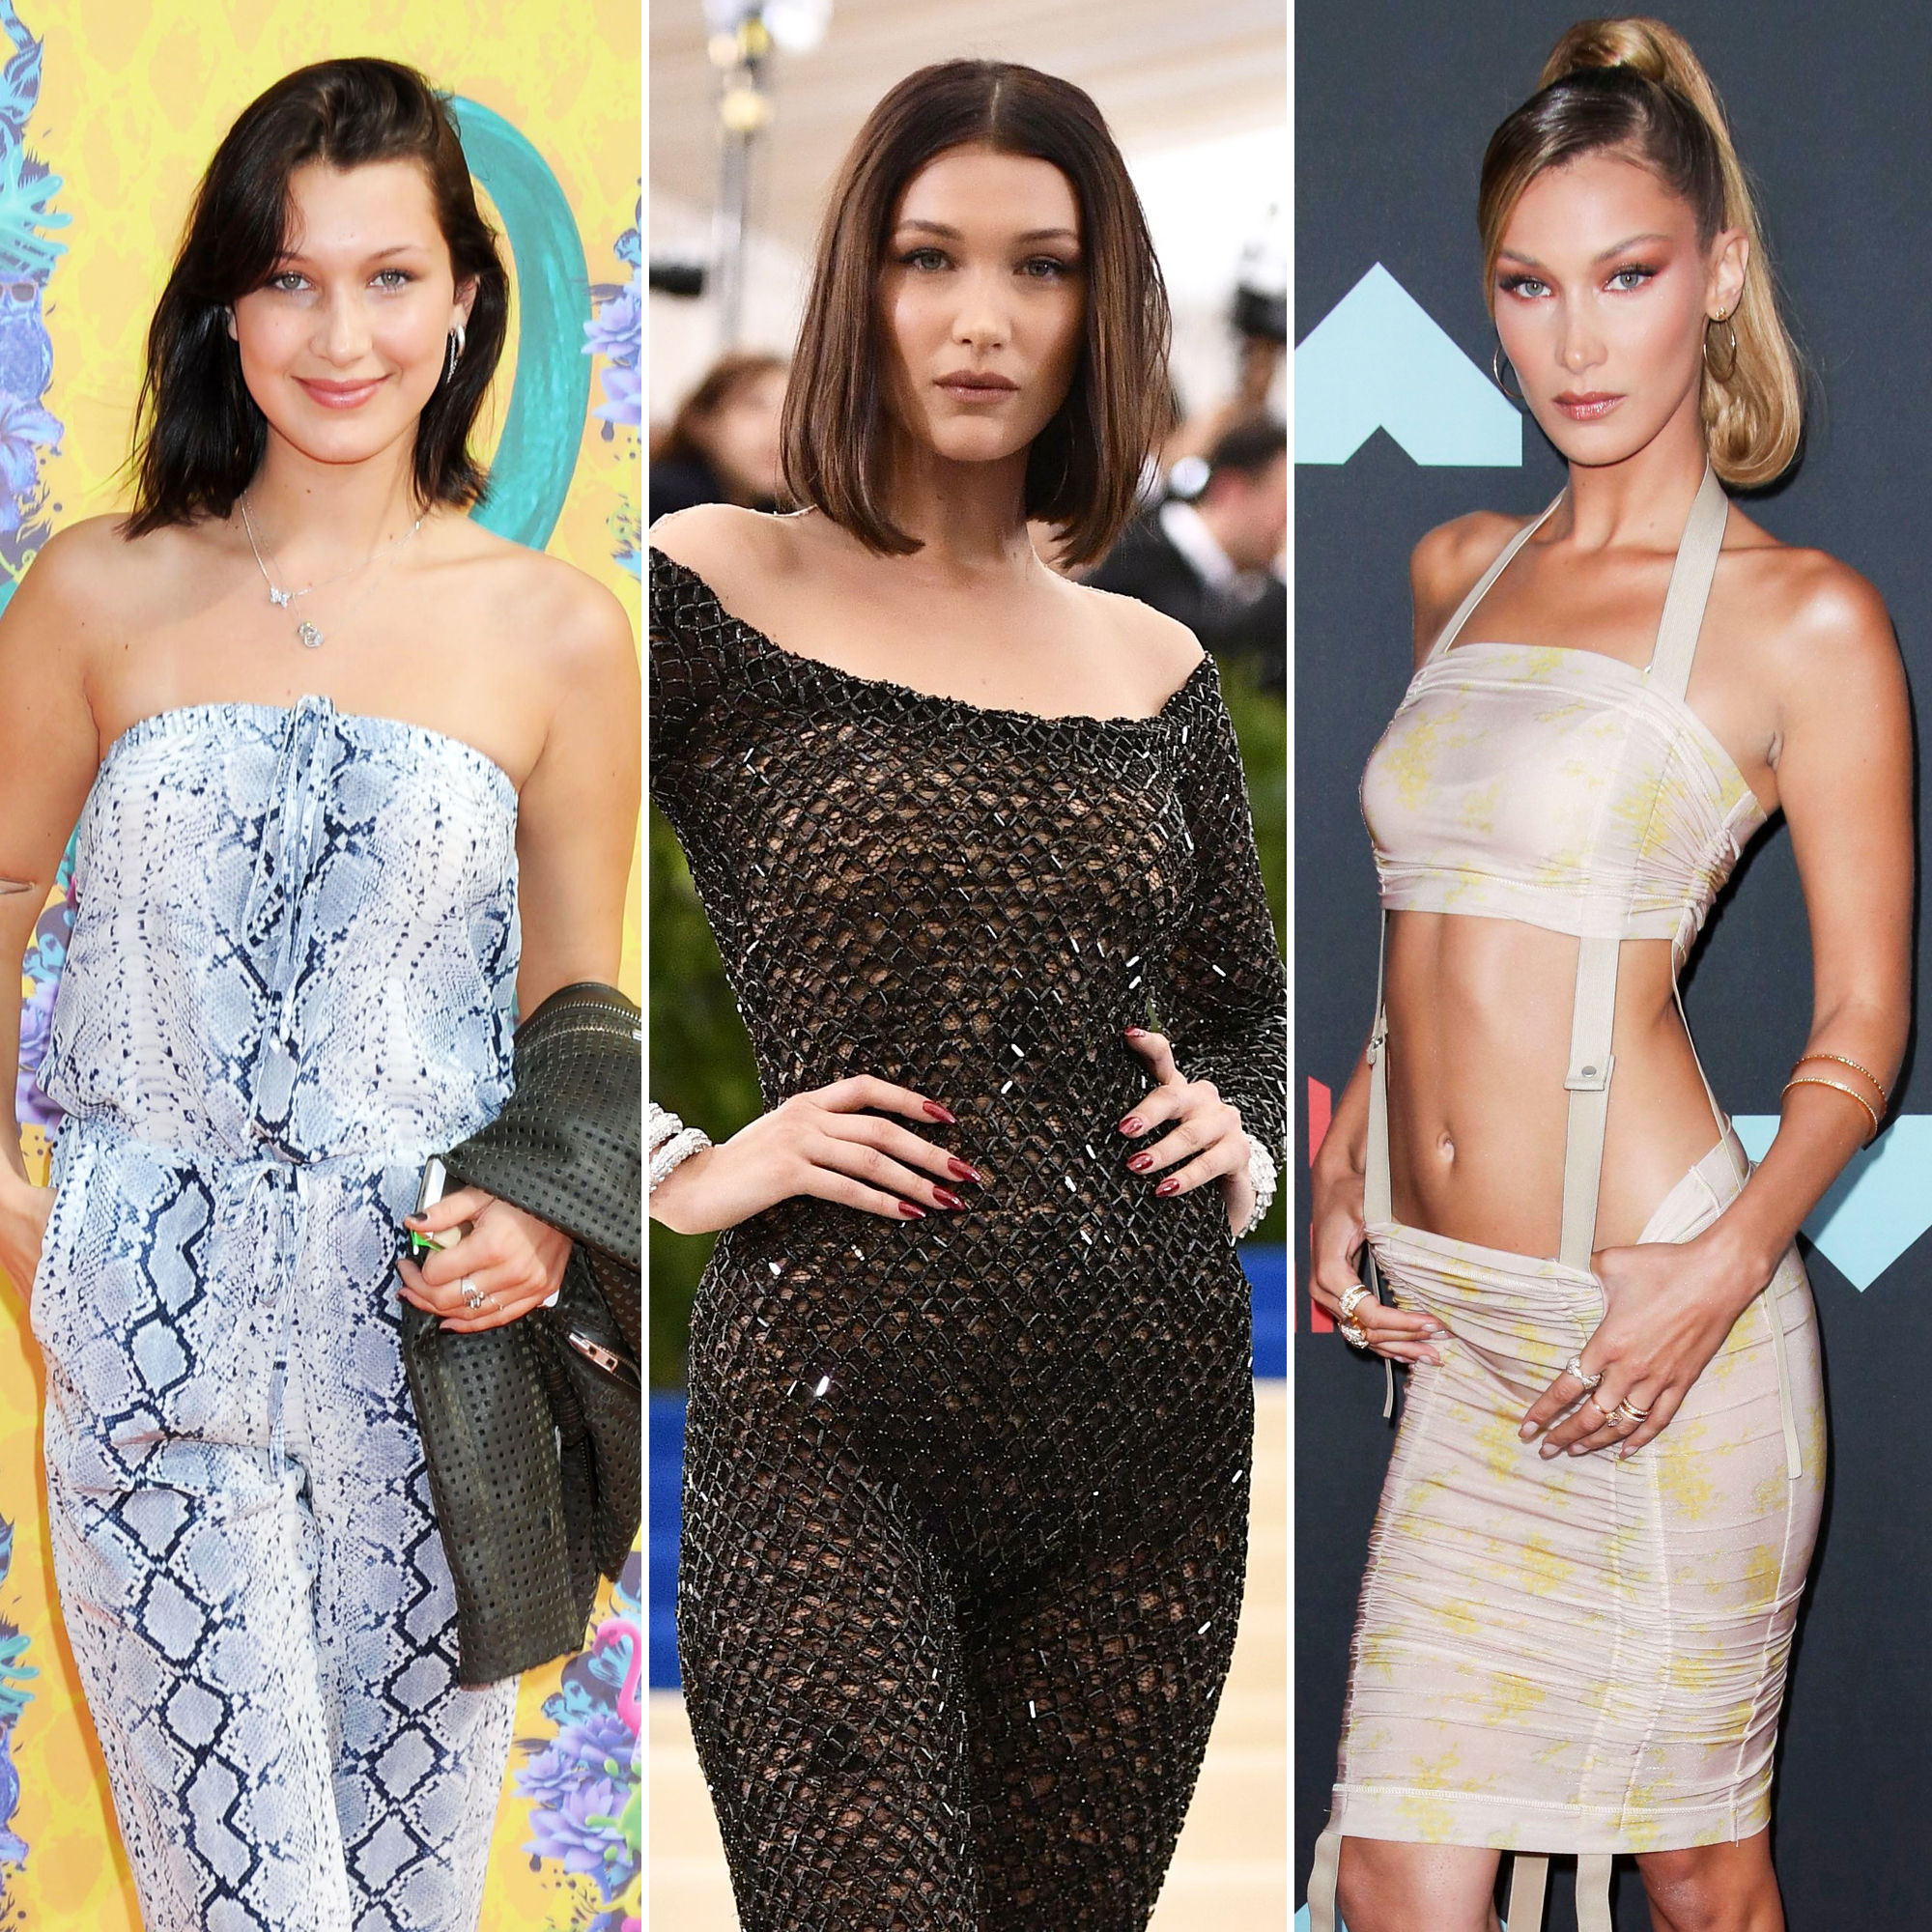 Bella Hadid Young to Now: Plastic Surgeon Comments on